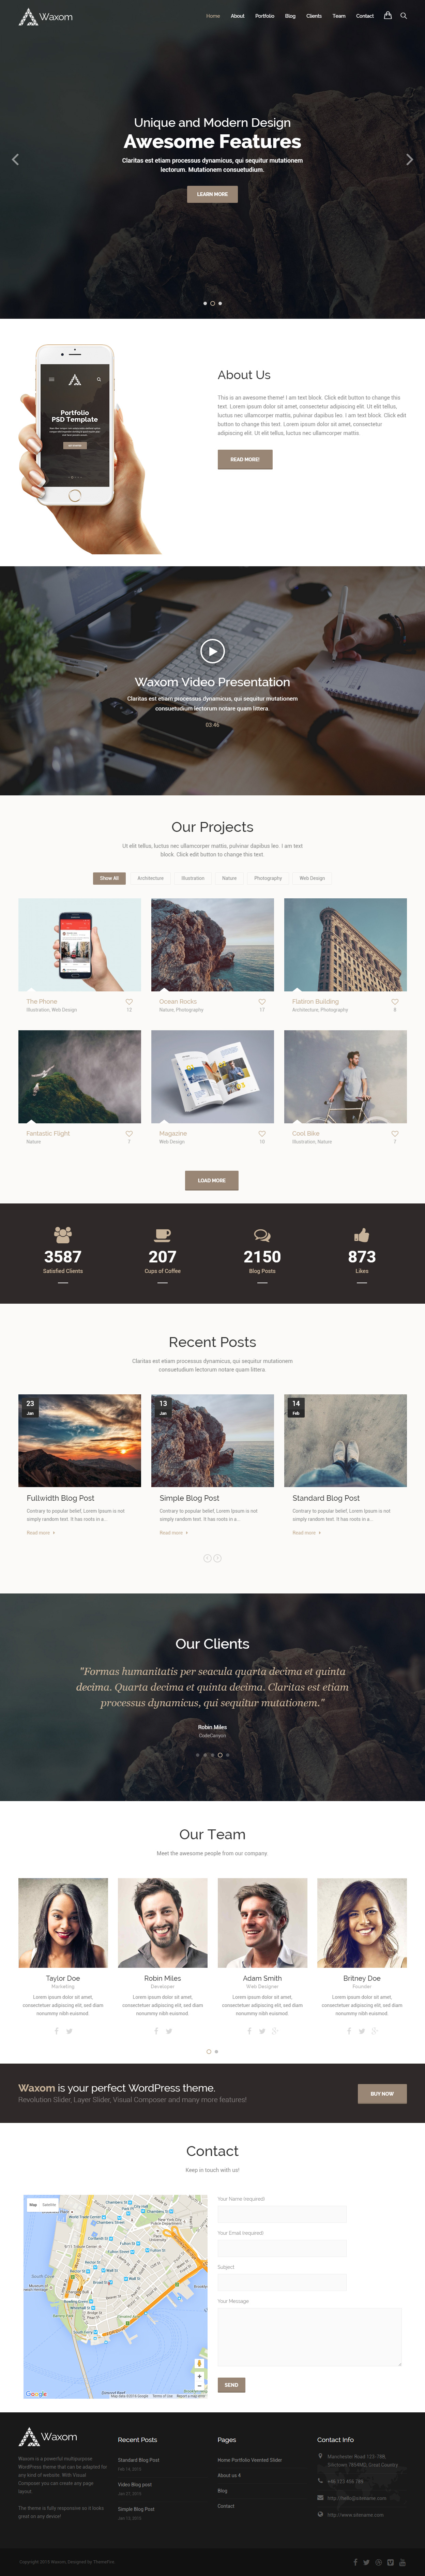 40 Best Wordpress Bootstrap 3 Themes 2017 - Responsive Miracle